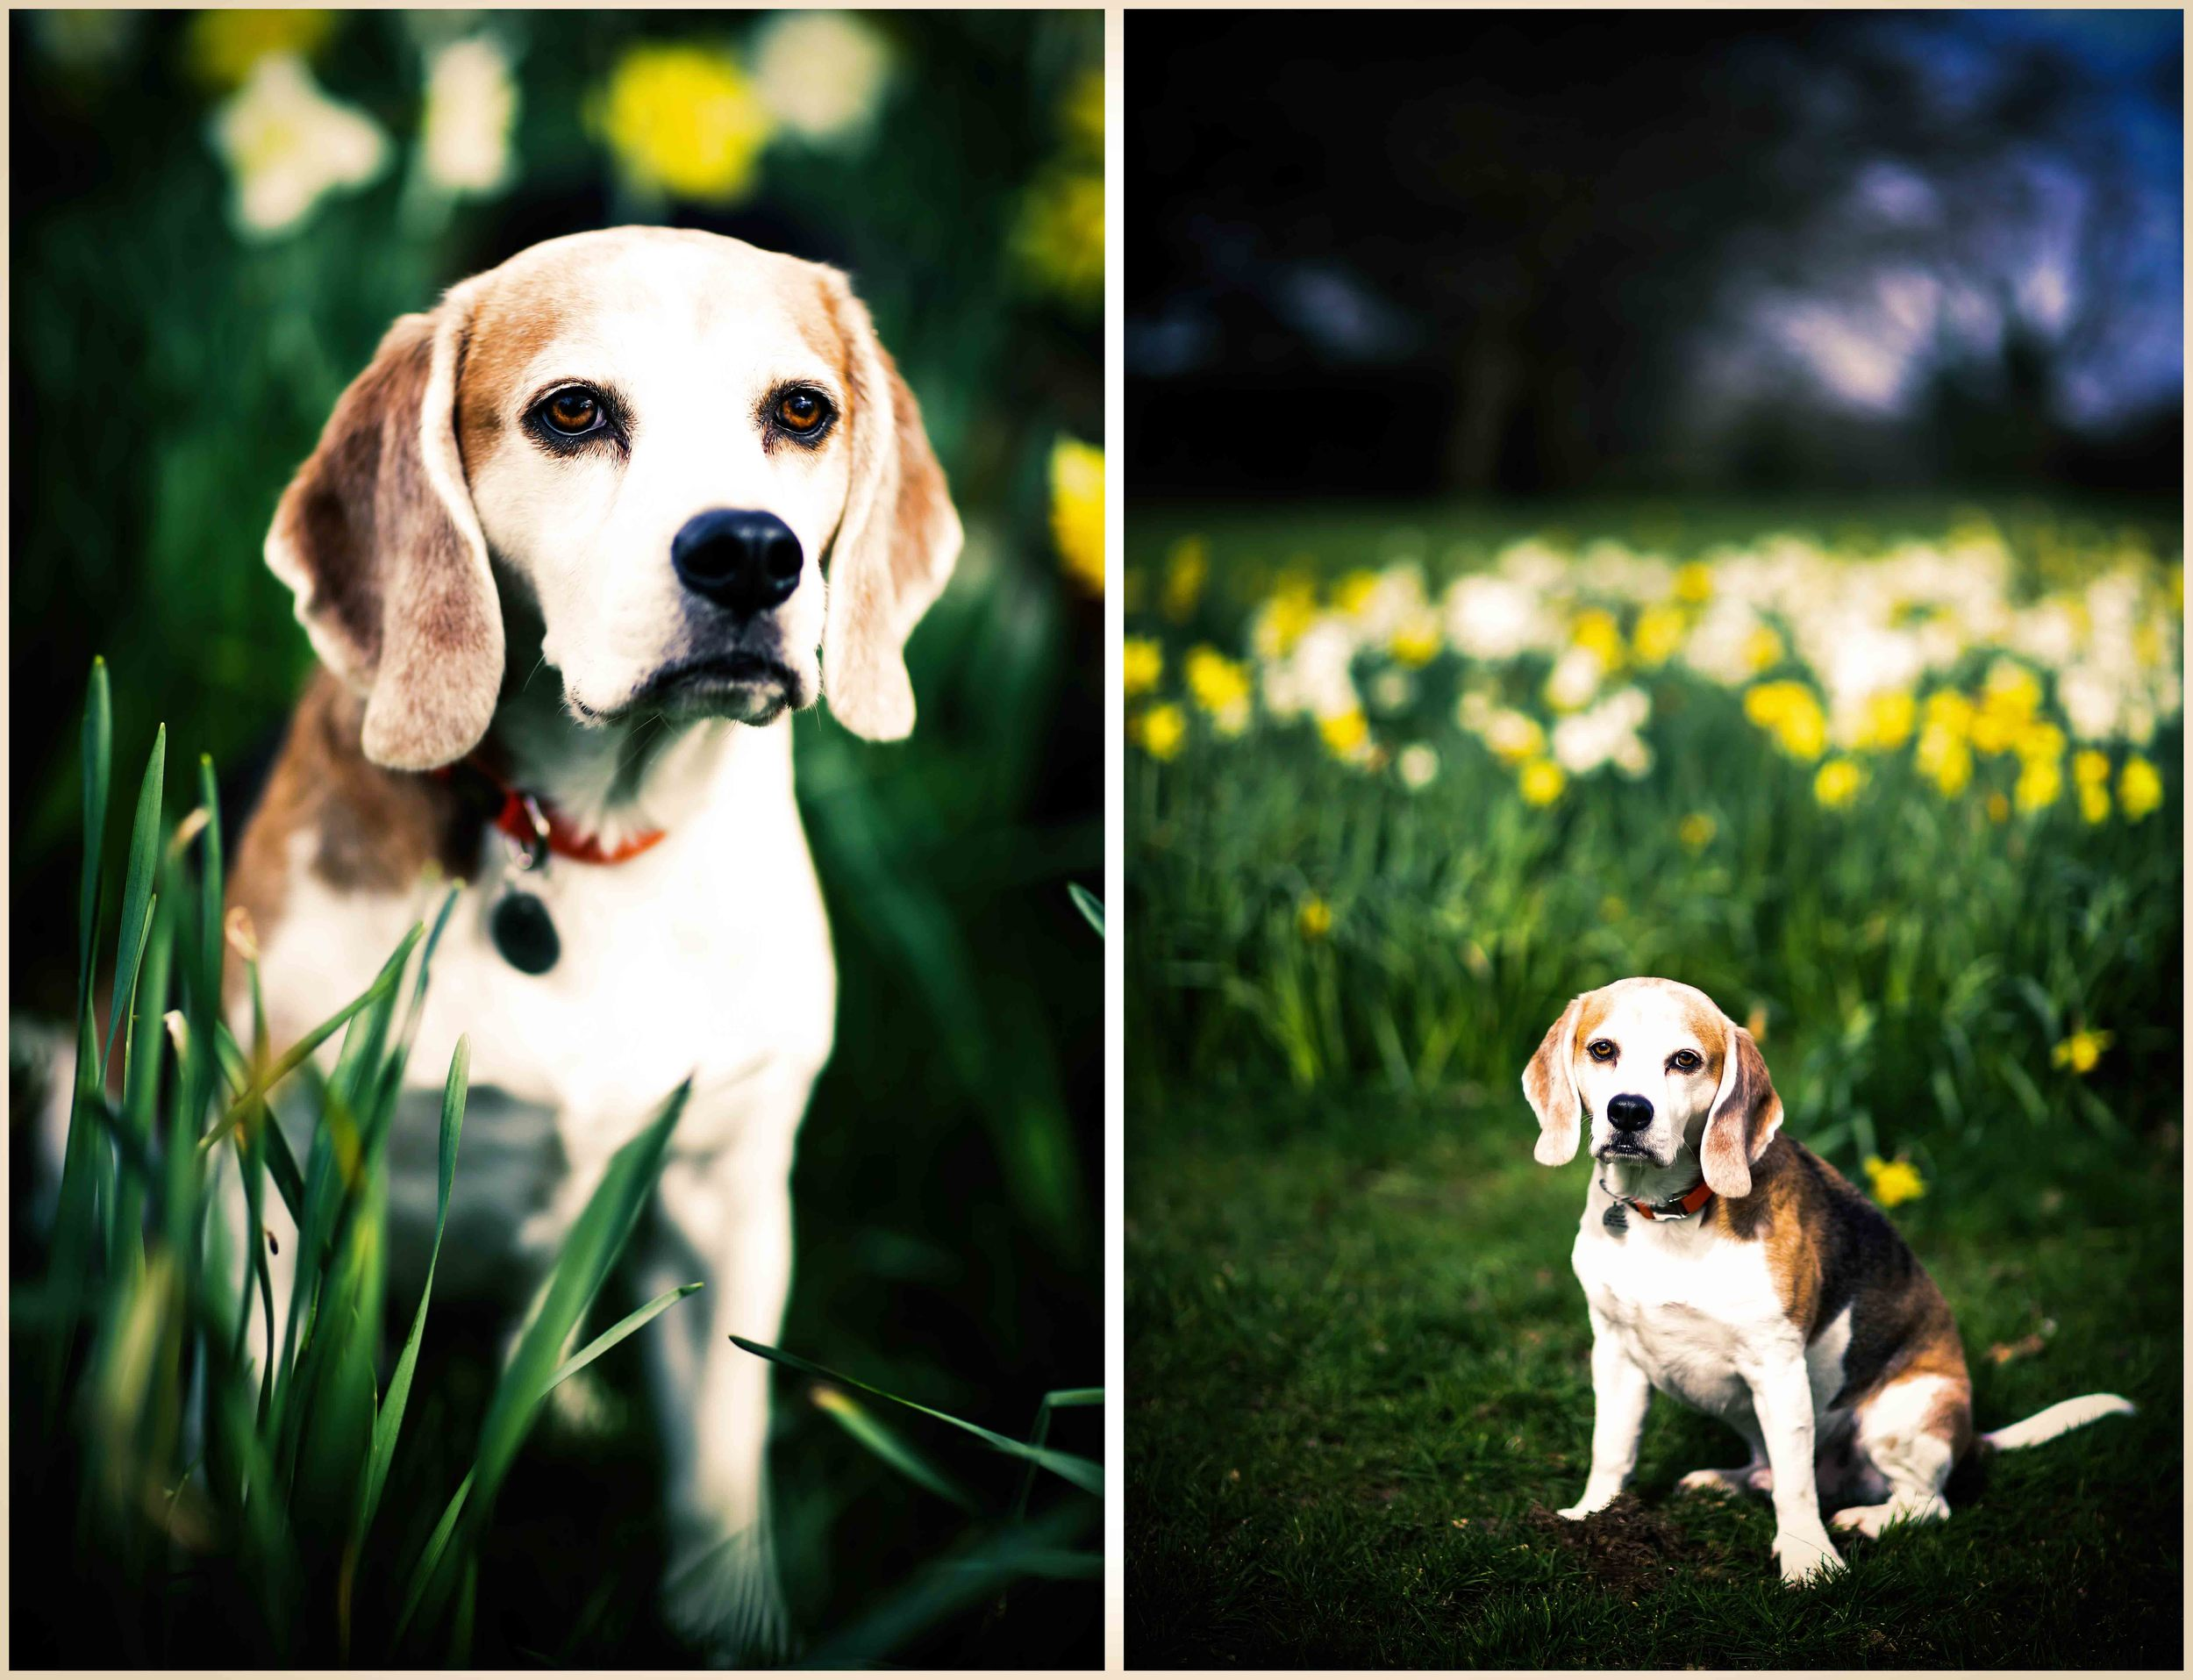 Dogs_April_2016_composite3RS.jpg